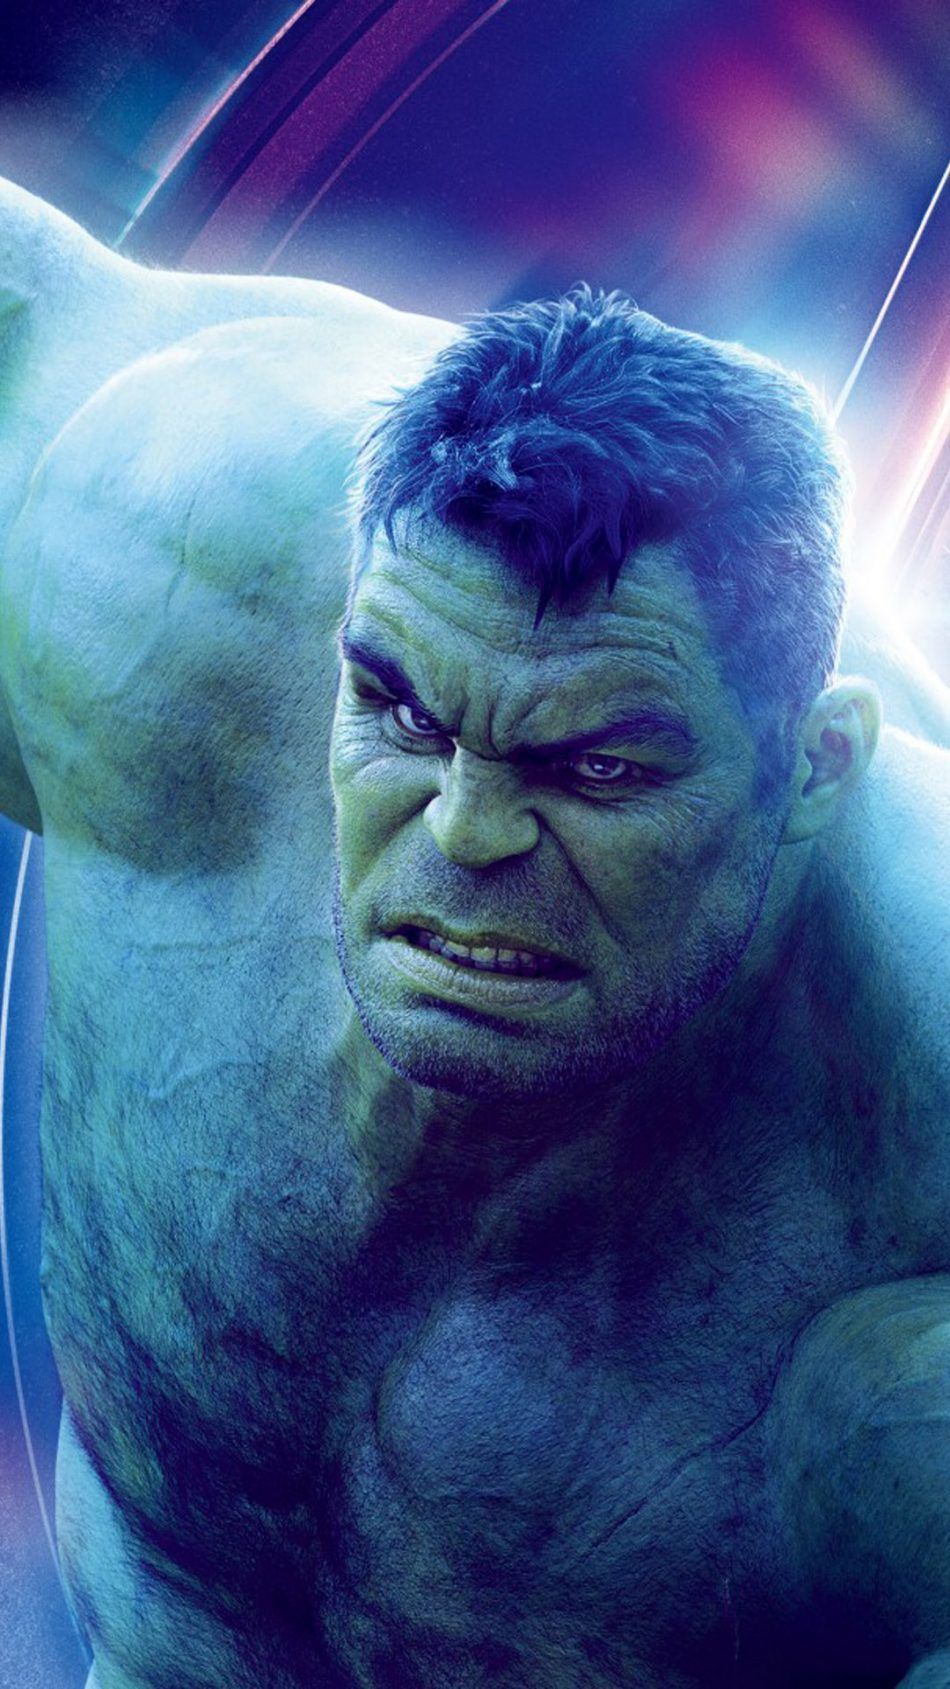 Hulk In Avengers Infinity War 4k Ultra Hd Mobile Wallpaper Hulk Avengers Hulk Poster Avengers Pictures